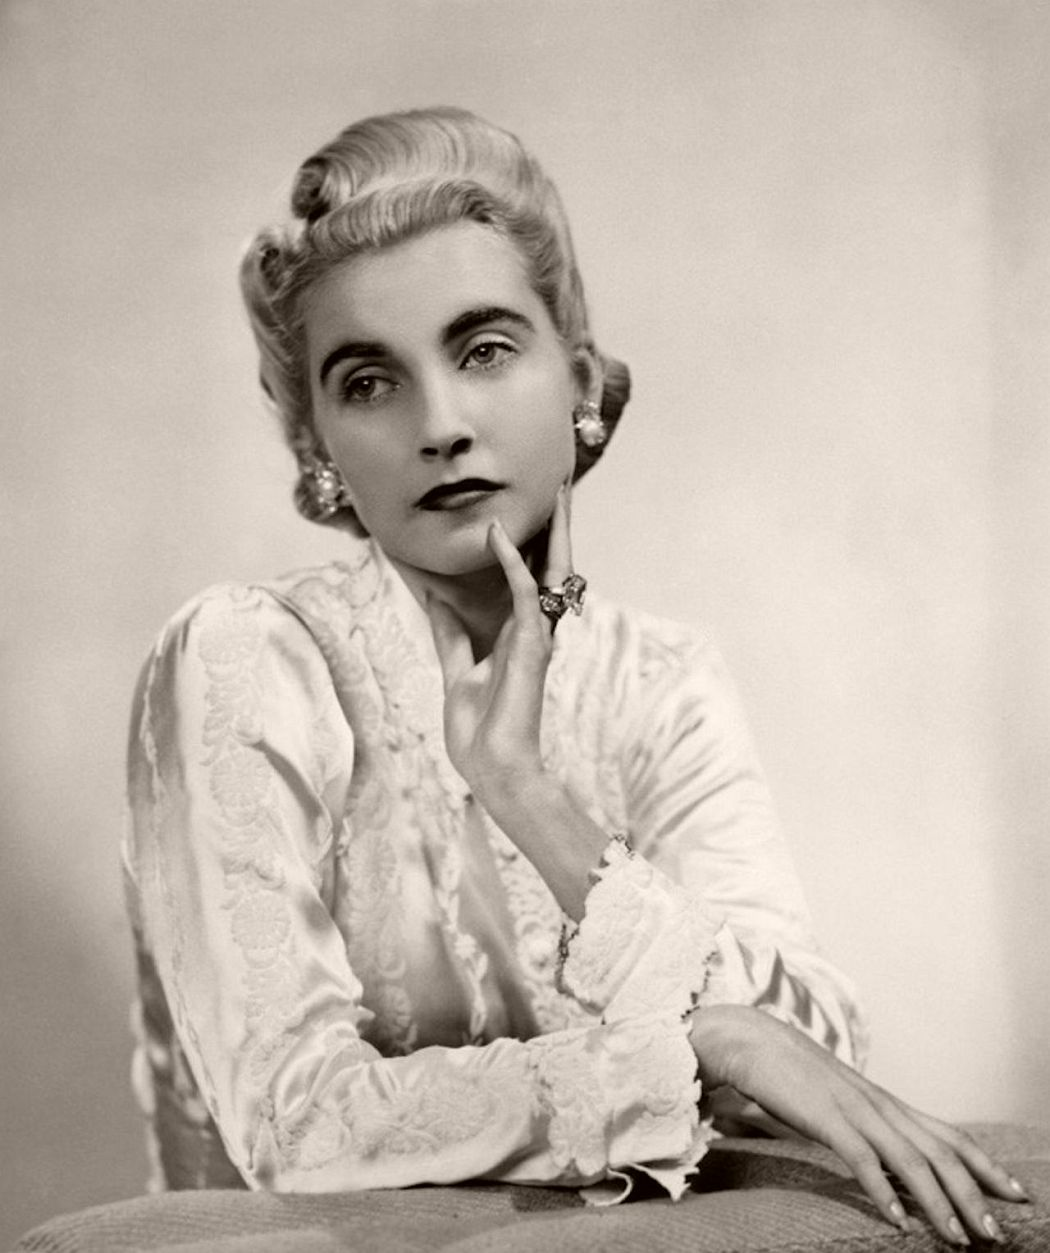 A 1930s fashion icon and the heiress of the Woolworth's fortune, Barbara Hutton was the latter day social scene Queen, travelling the world to attend lavish parties and dubbed the 'poor little rich girl' after hosting an expensive debutante ball amid the Great Depression. With an intense passion and fascination for jewellery, Barbara's collection rather than her wealth was what she left behind, with her vast collection spanning jade necklaces, Cartier pieces and a pearl necklace previously owned by Marie Antoinette. A collection any jewellery enthusiast would envy.